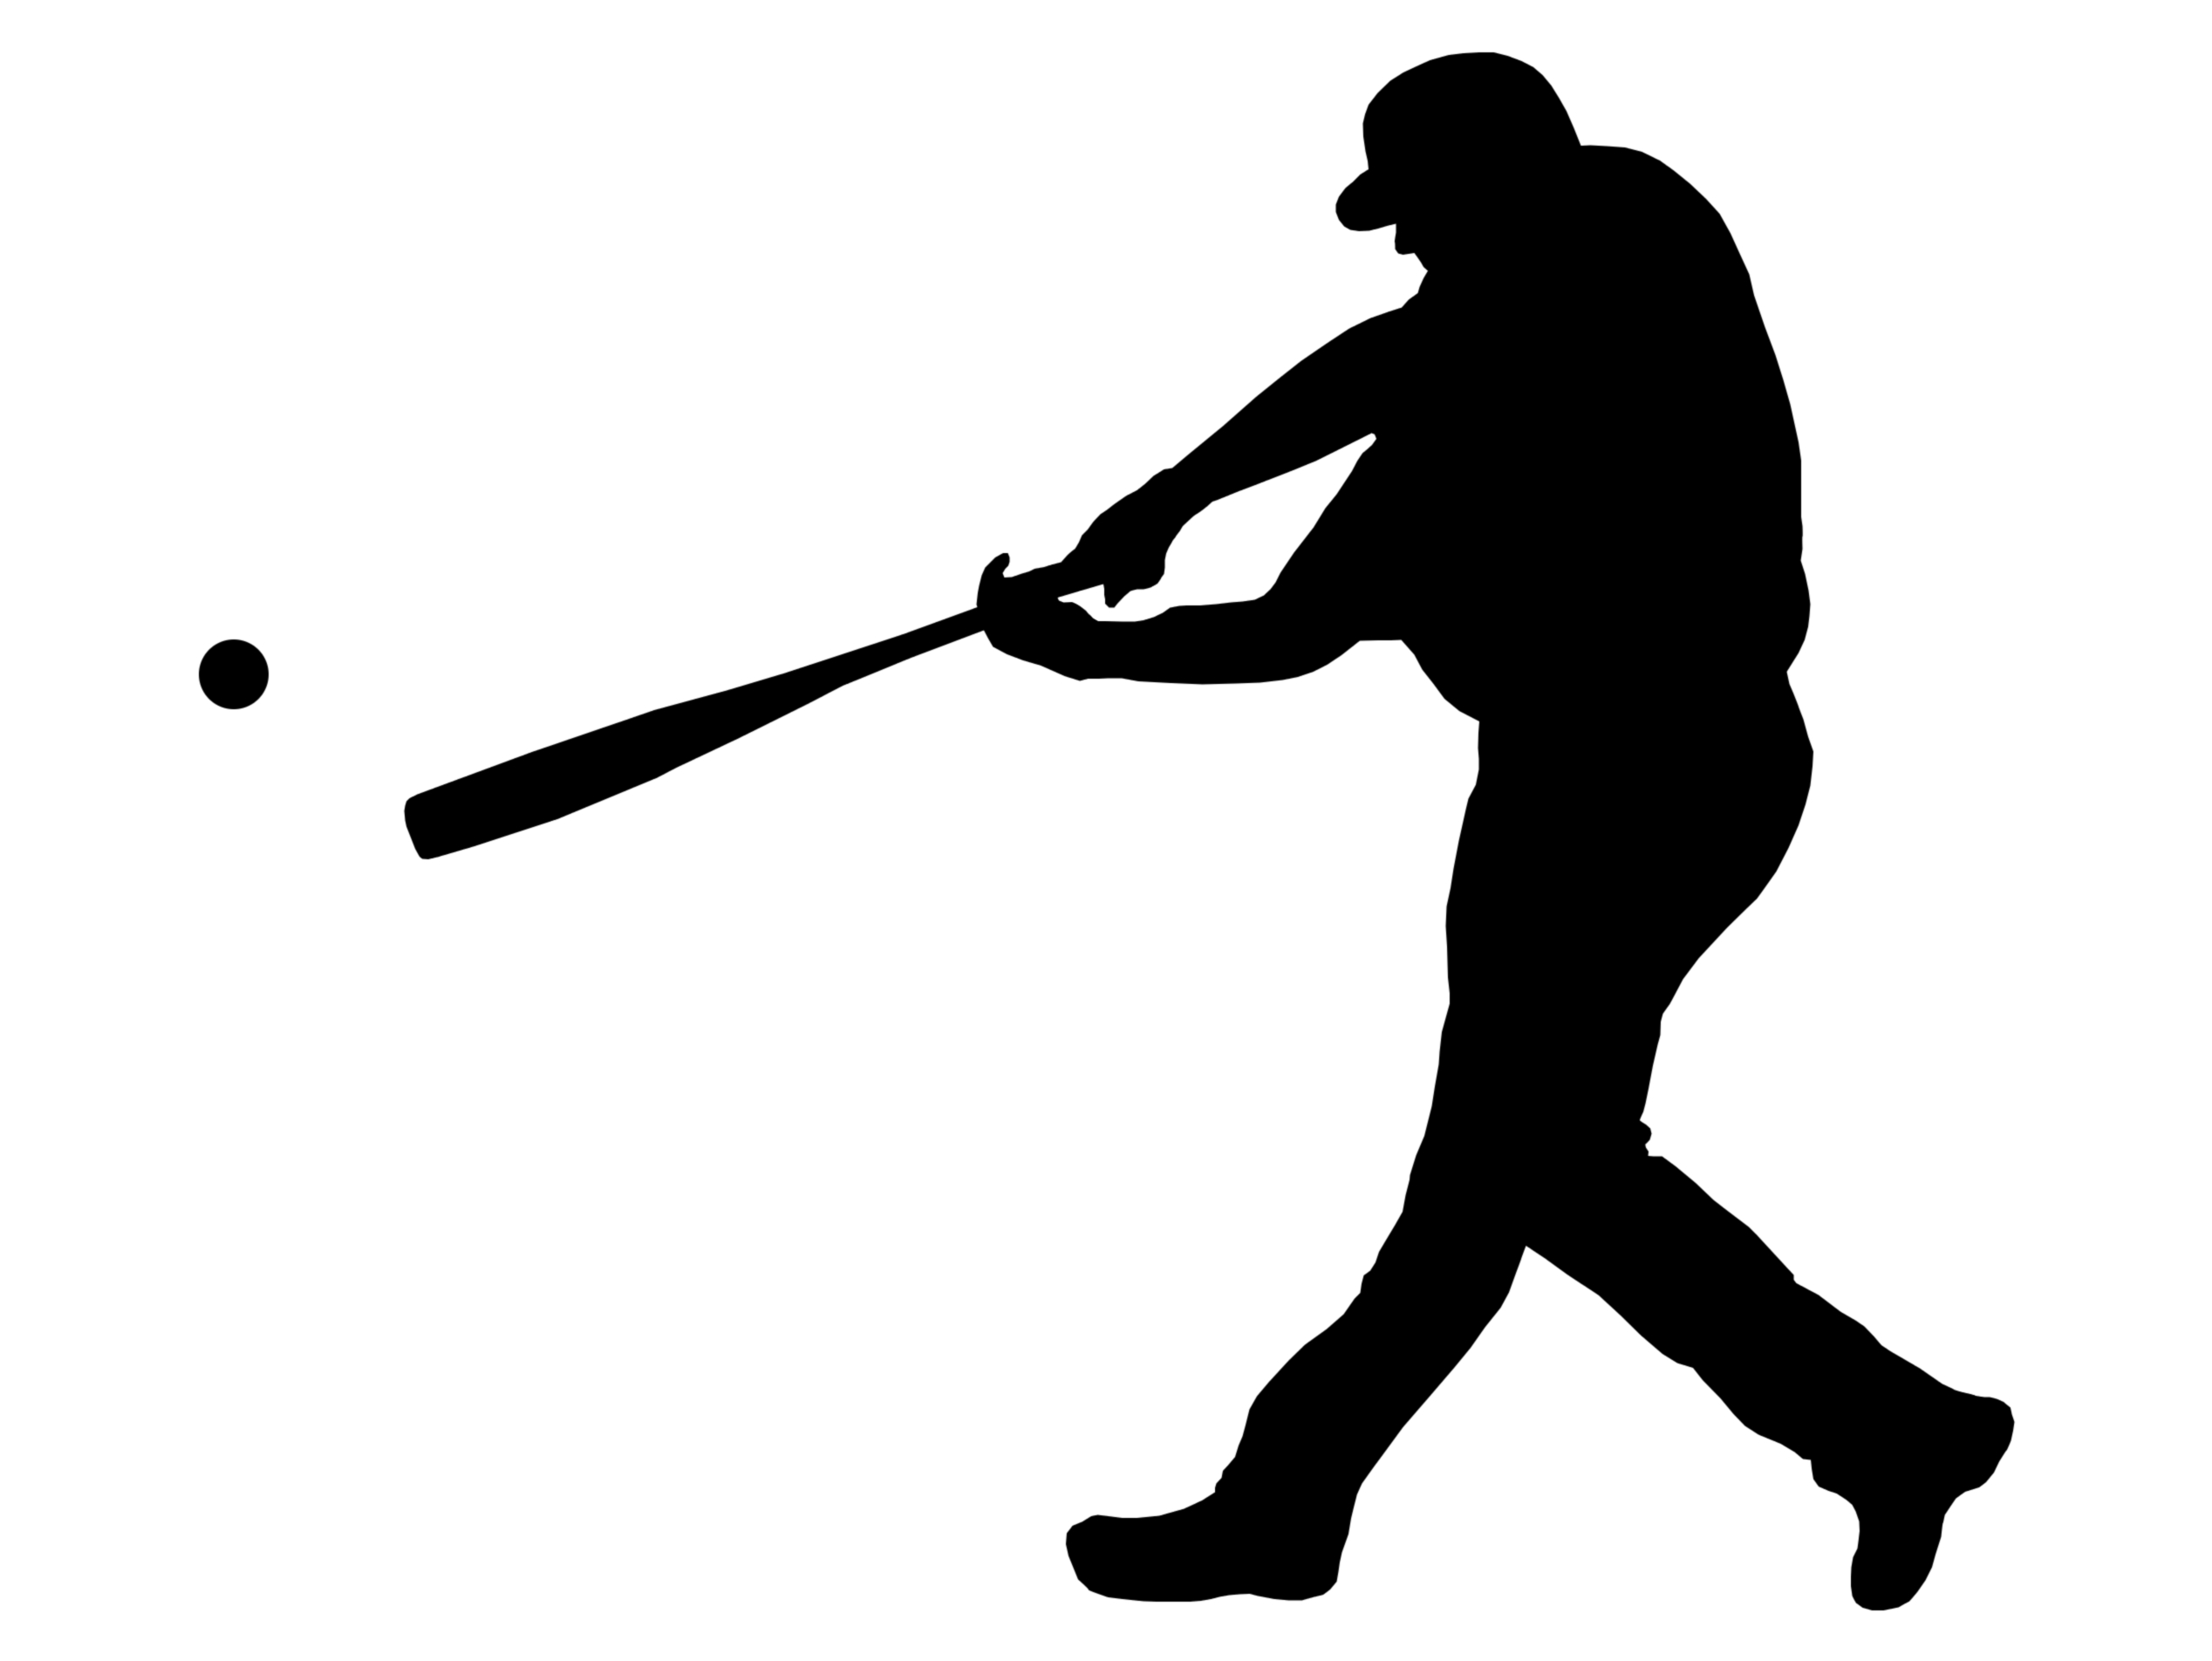 Baseball clipart black and white transdfer express vector royalty free download Softball Batter Clipart | Free download best Softball Batter Clipart ... vector royalty free download